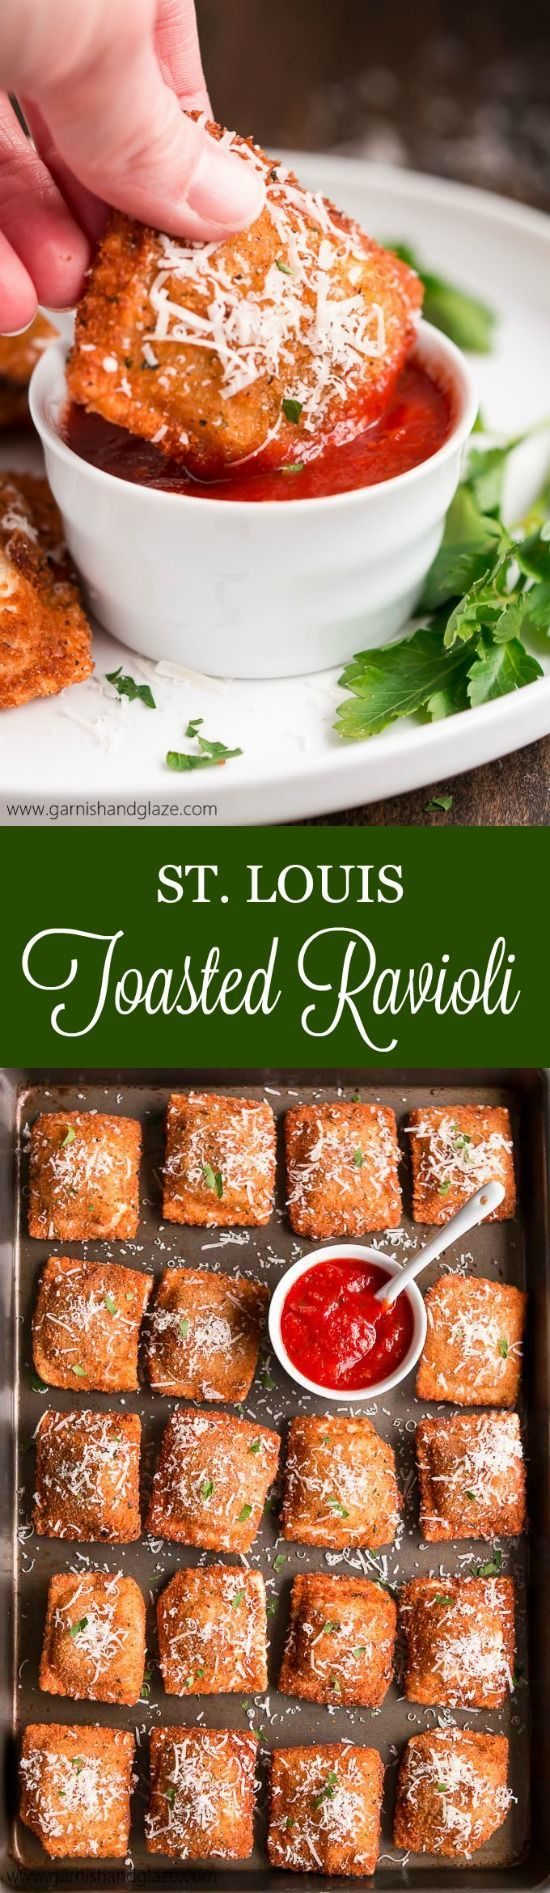 These crisp fried Toasted Ravioli, a St. Louis specialty, are the perfect appetizer to any Italian meal.